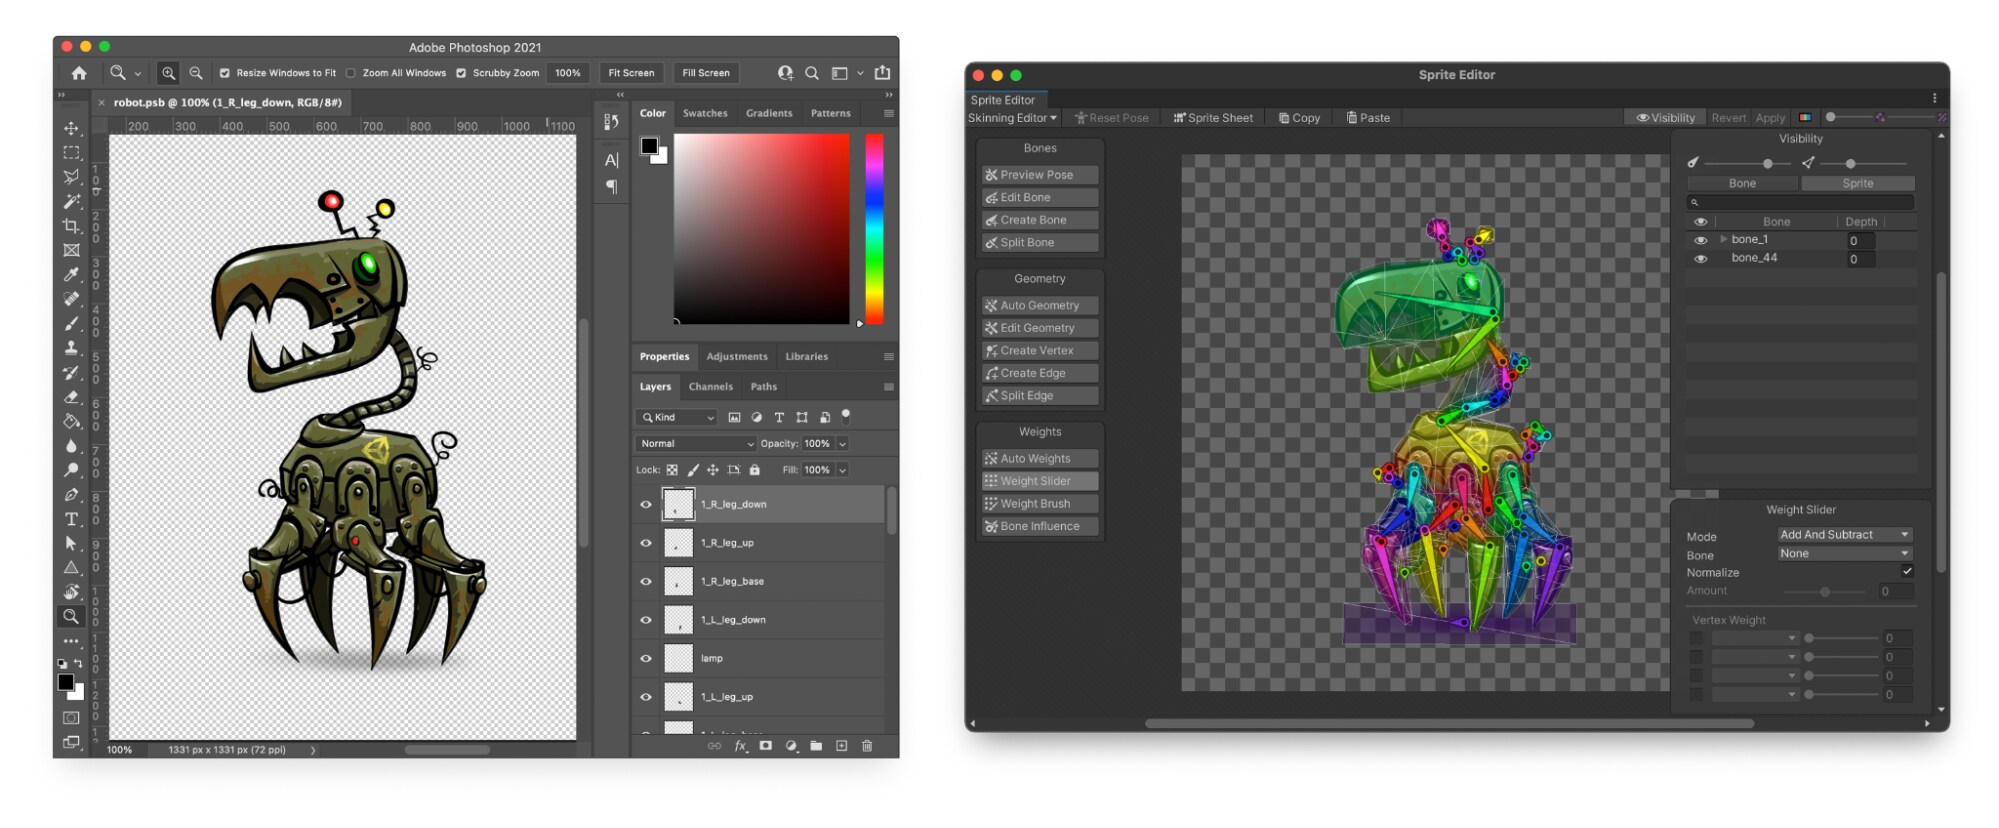 The character in Photoshop is a Prefab in Unity, ready to rig in the Sprite Editor